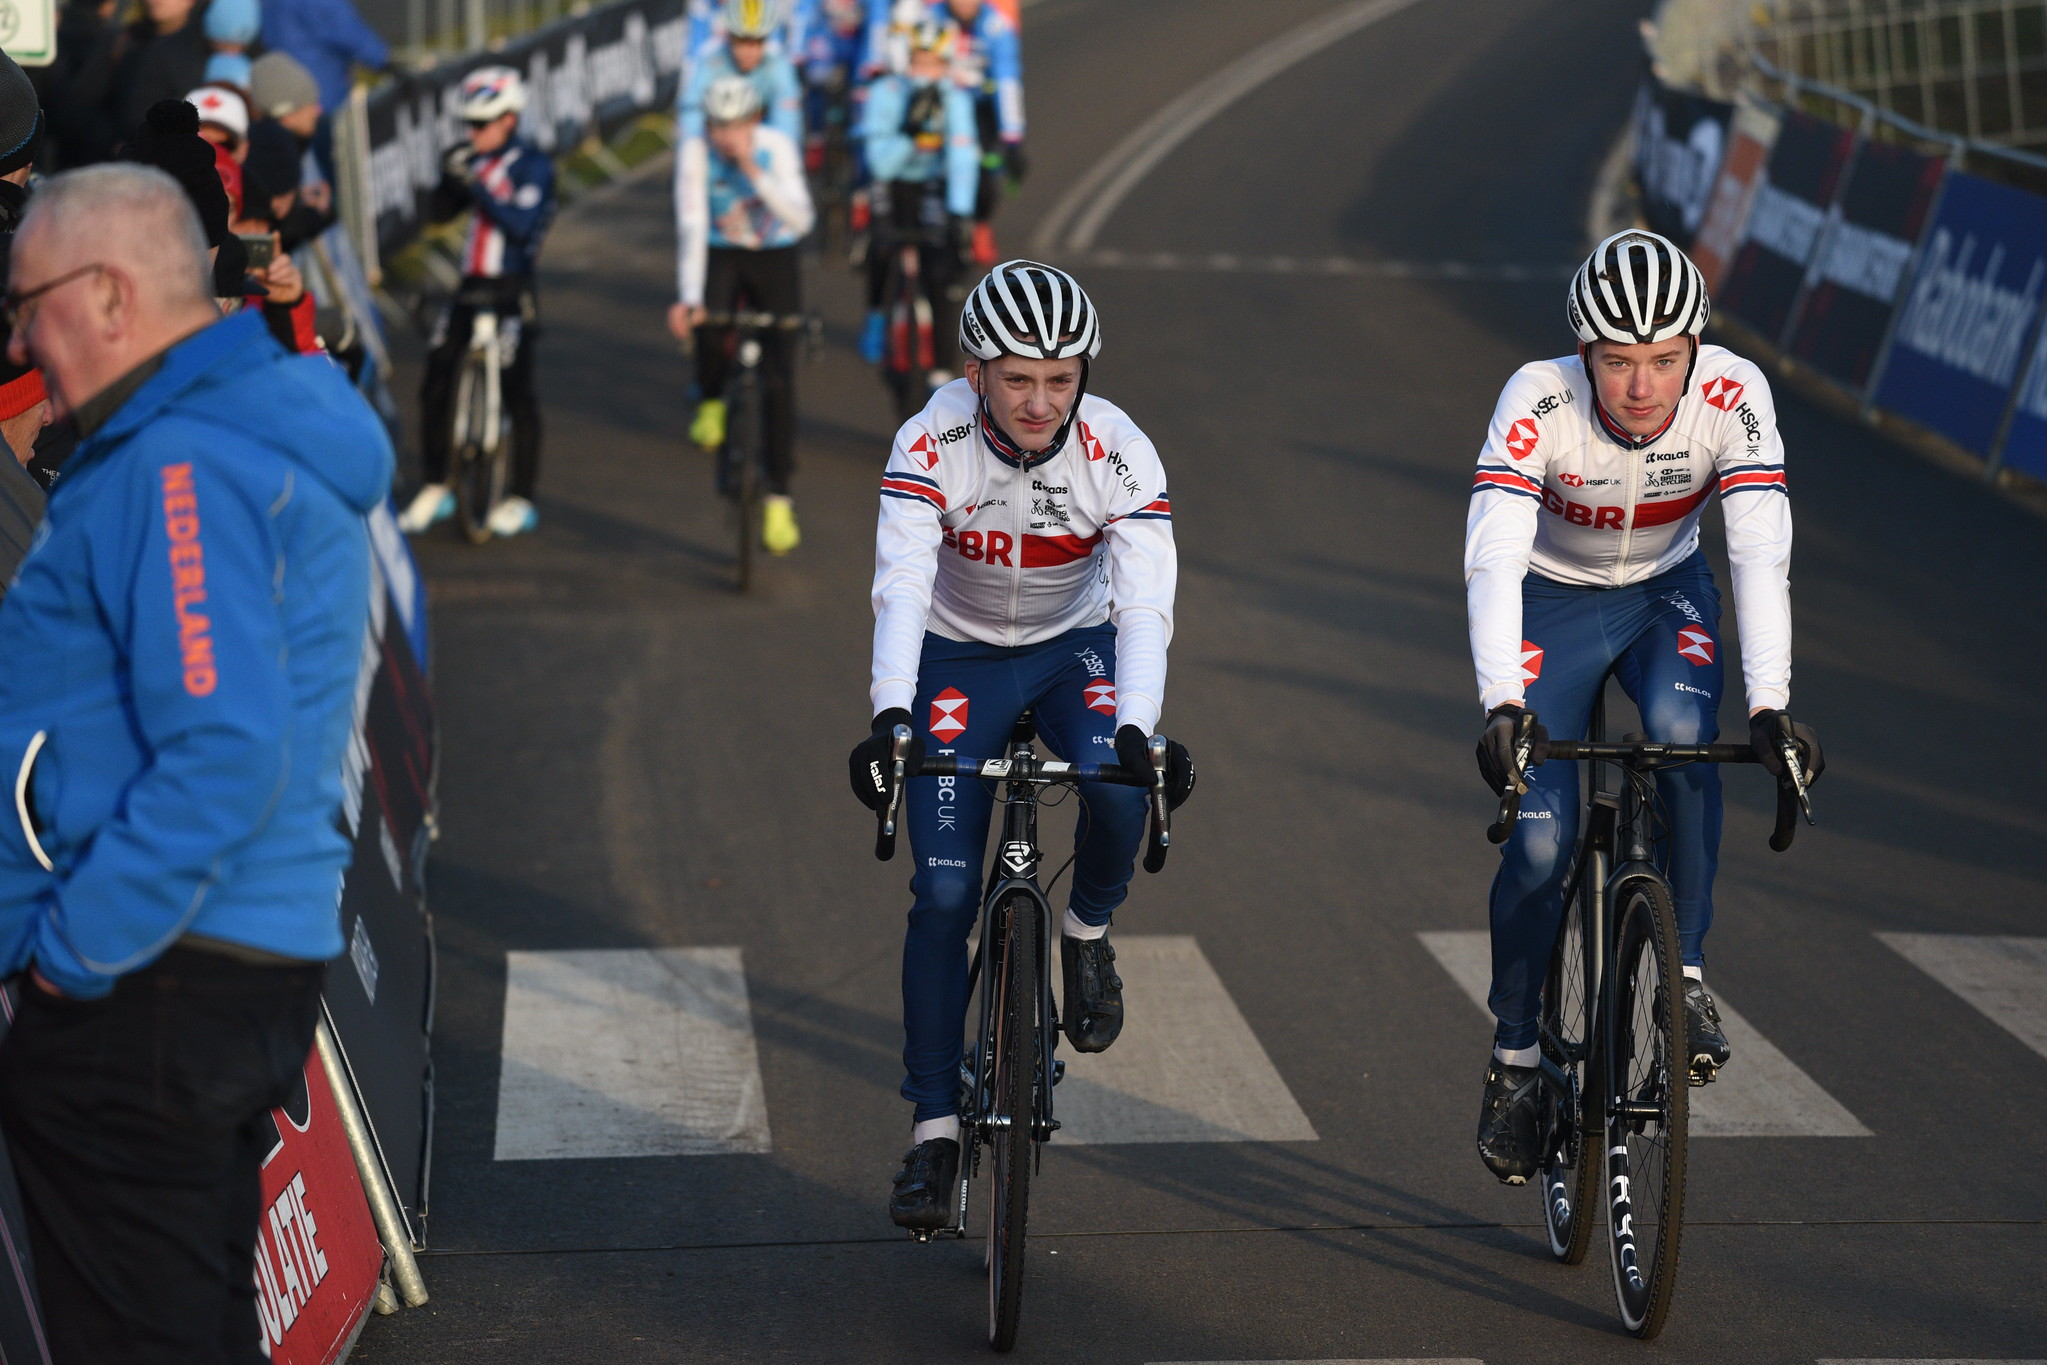 Great Britain Cycling Team at the 2019/2020 UCI Cyclo-Cross World Cup - Round 9 in Hoogerheide [The Netherlands]